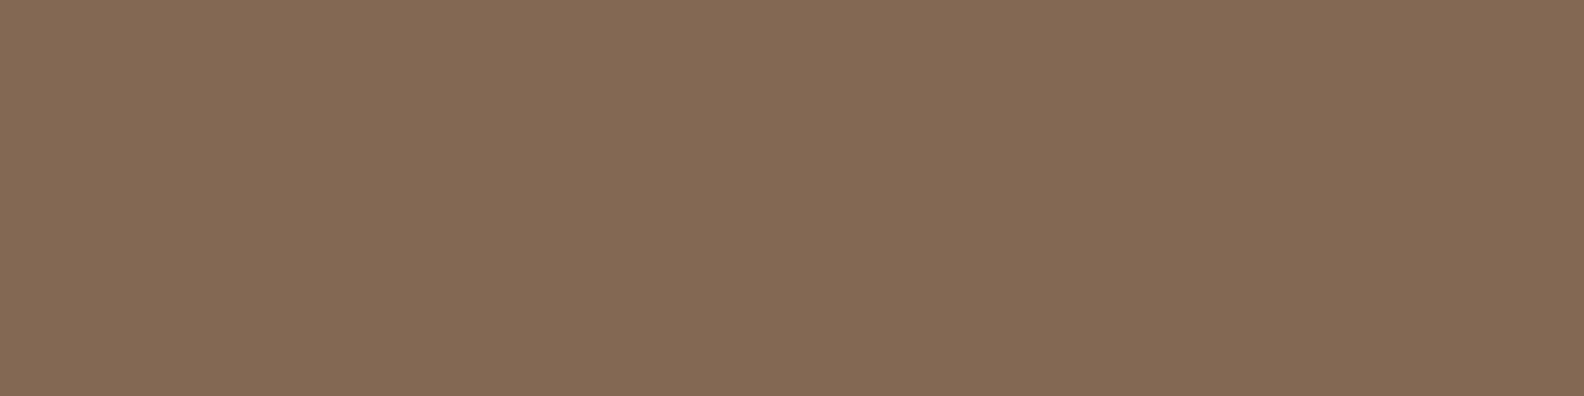 1584x396 Pastel Brown Solid Color Background